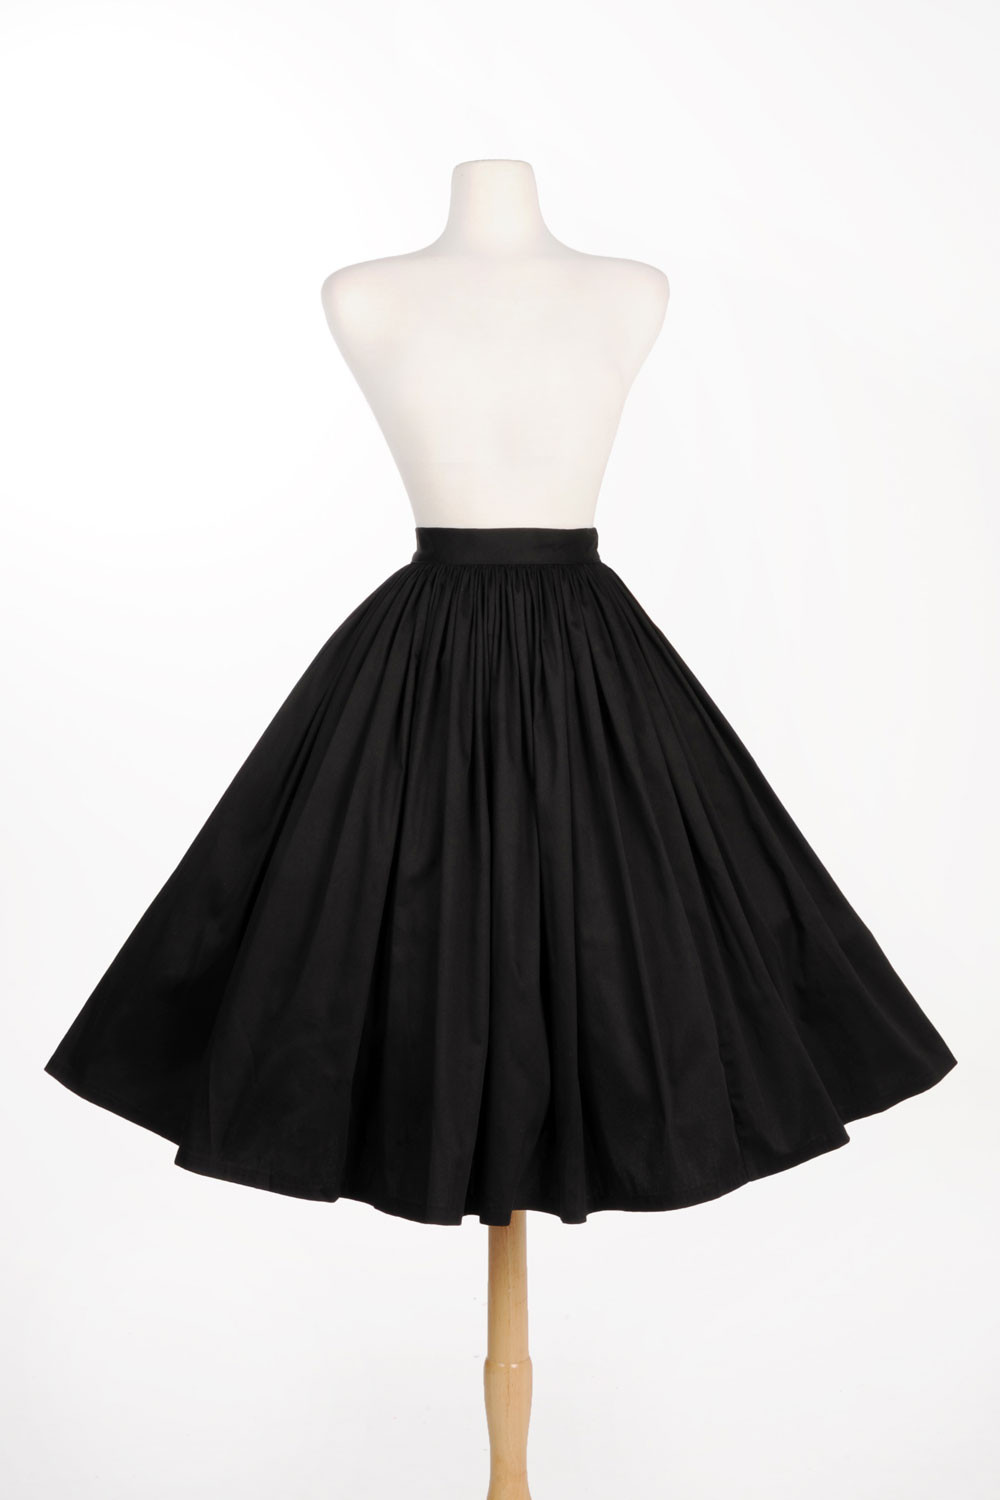 40 women vintage 50s jenny skirt in red high waist rockabilly pinup ... 65eb7c522a86